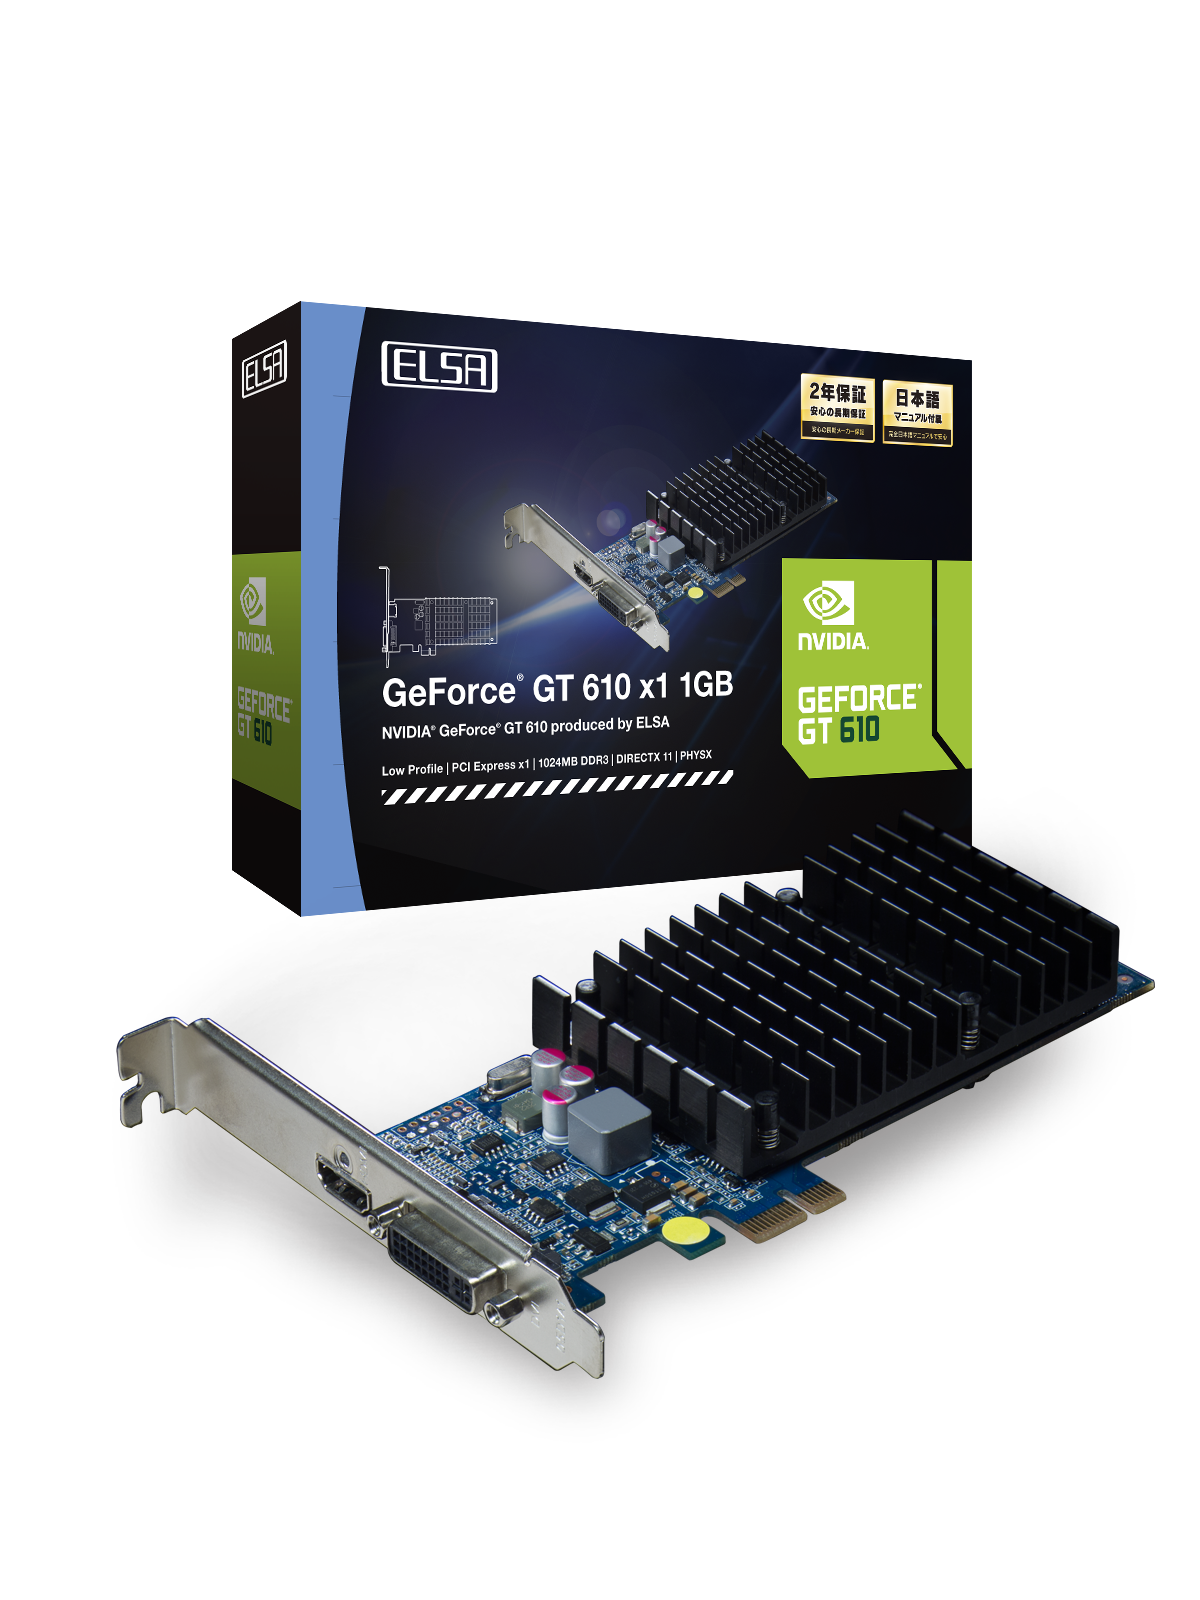 elsa_geforce_gt_610_x1_1gb_box_card